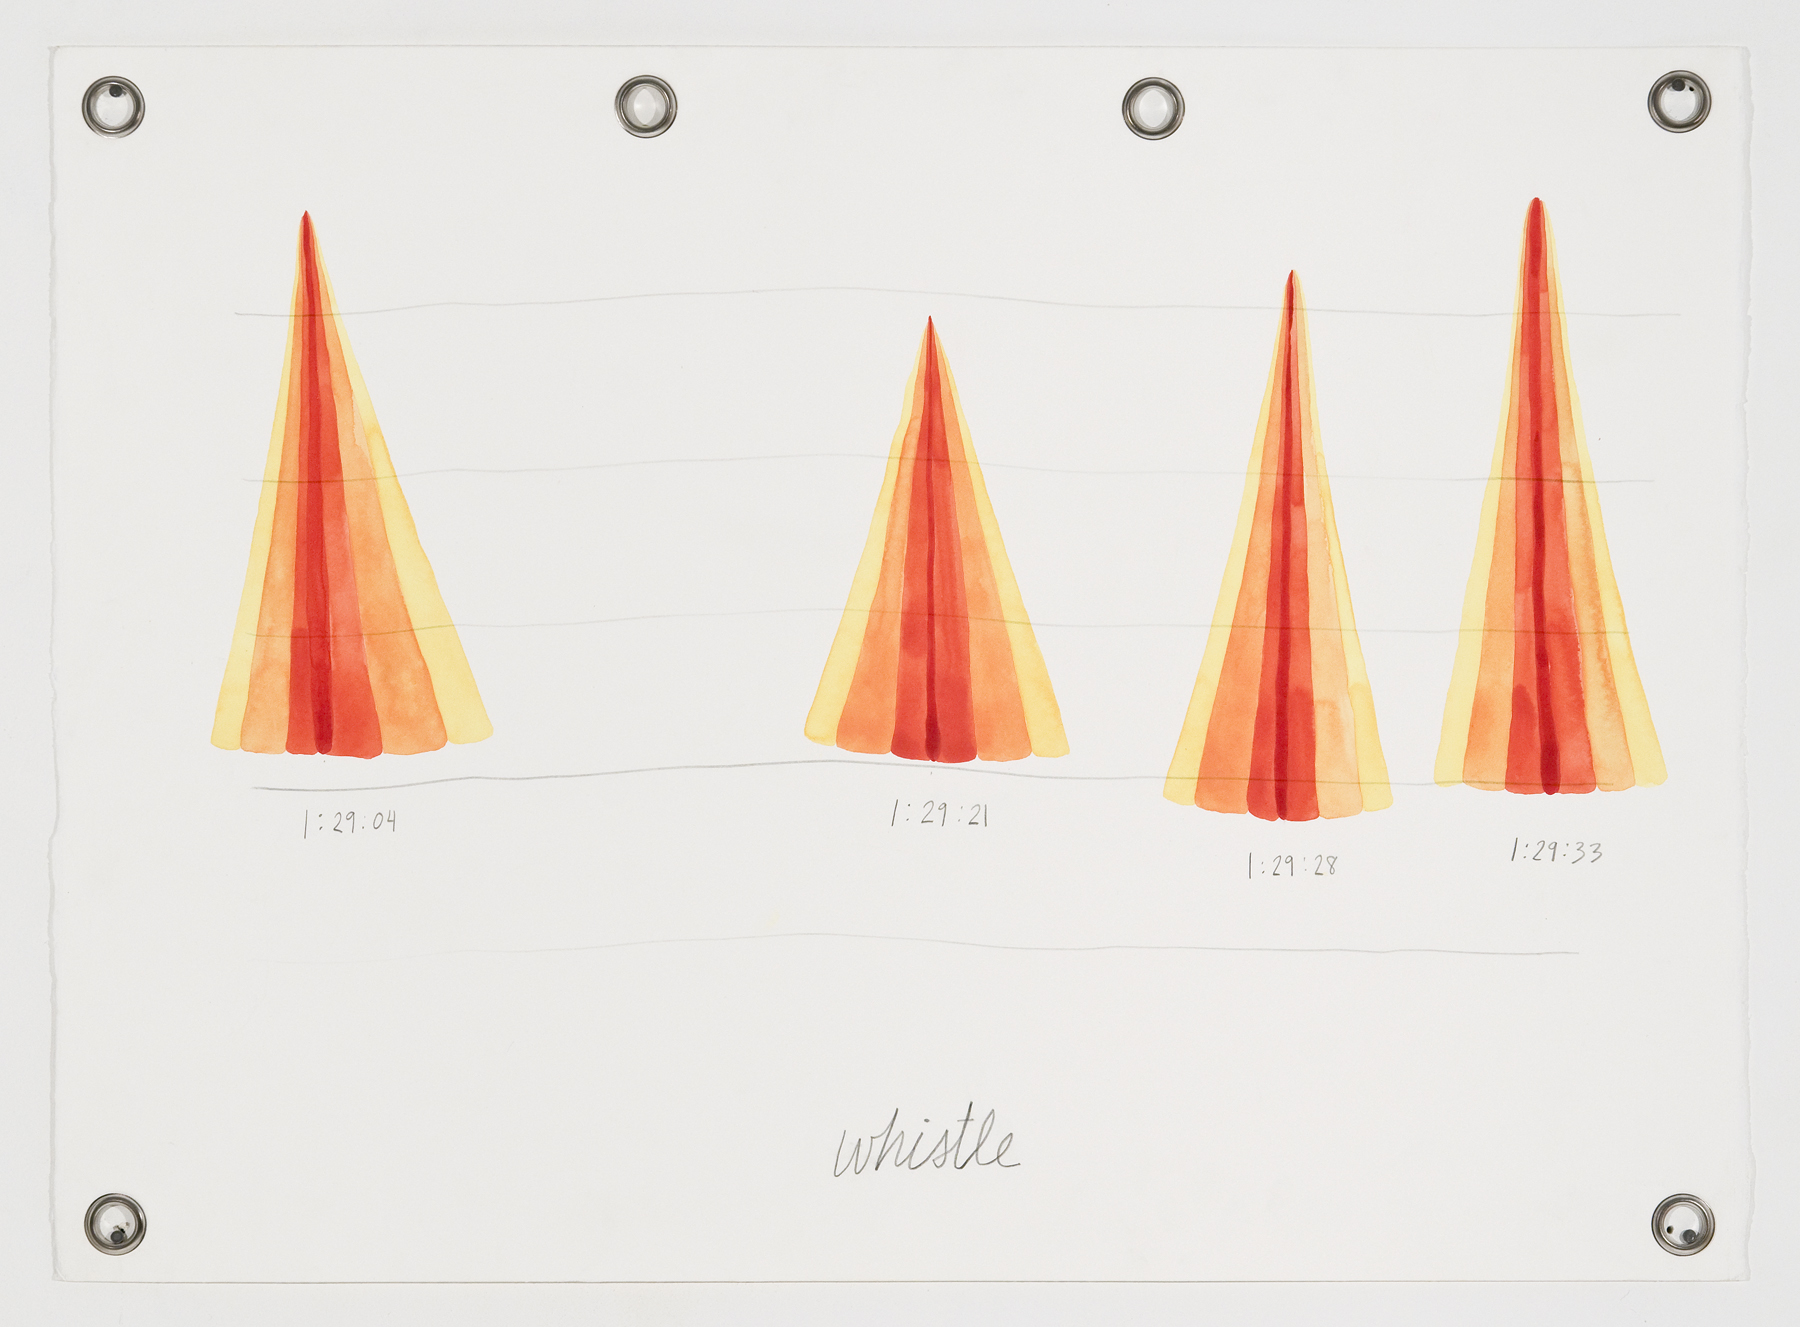 Ander Mikalson   Score for a Cyclone (Whistle),  2013 watercolor and graphite on paper, metal grommets 22 x 30 inches